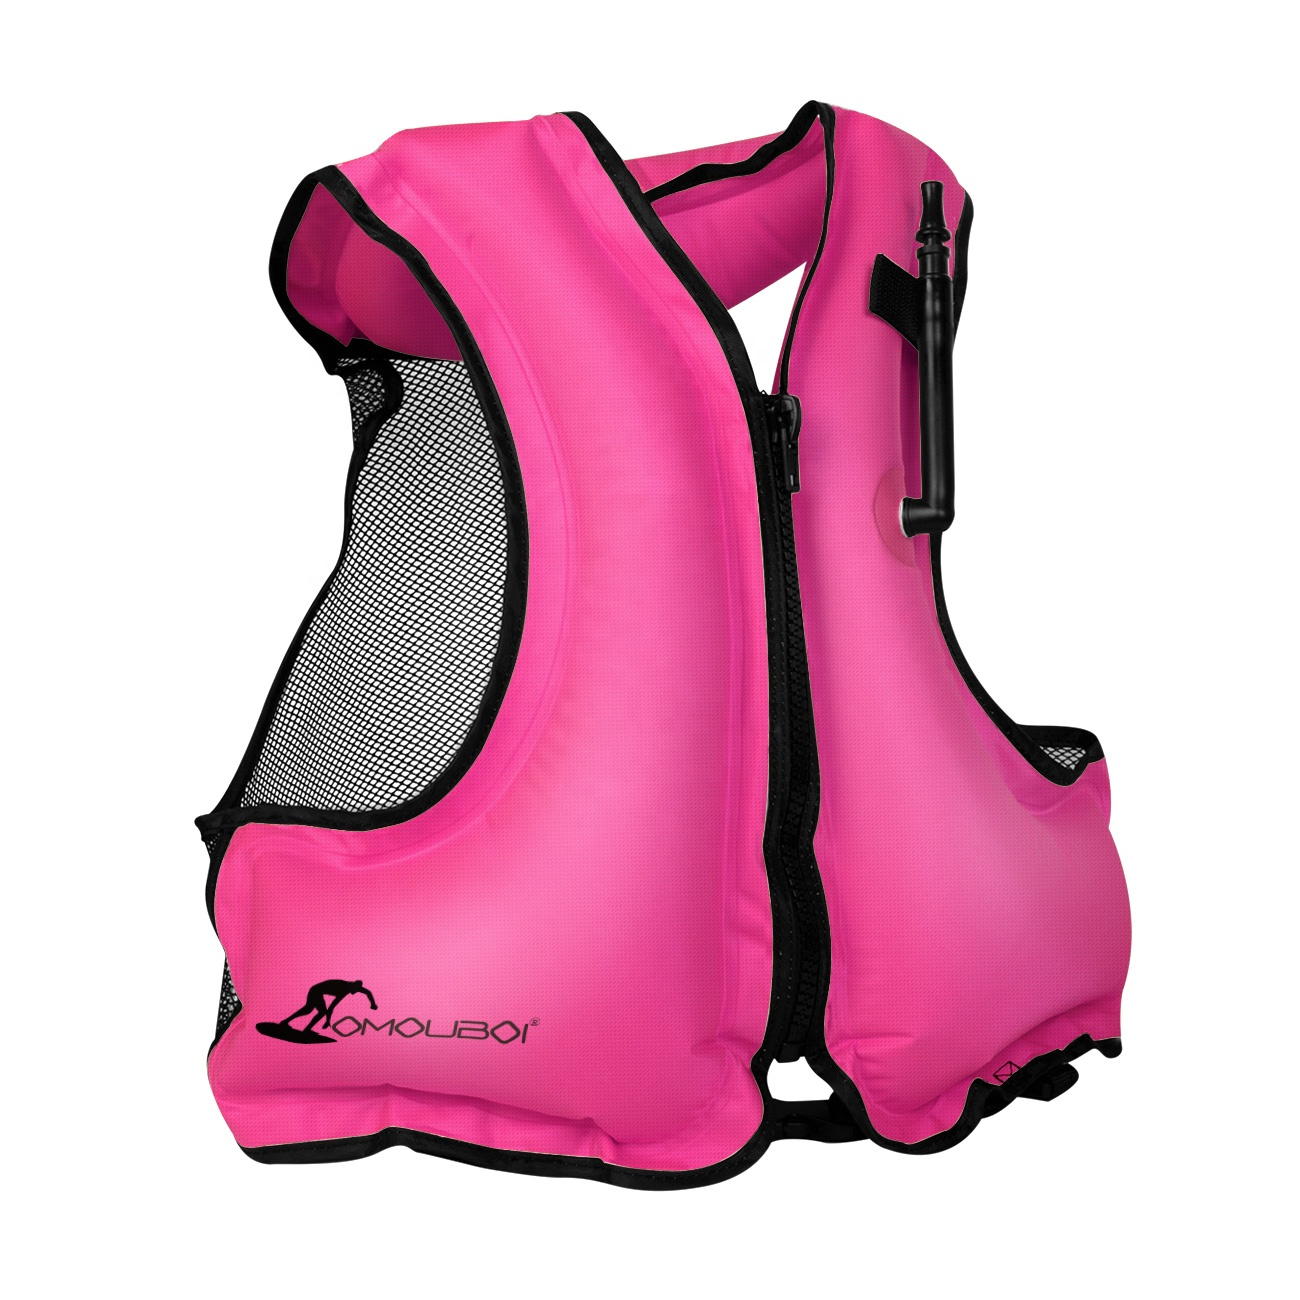 Factory price sale inflatable jacket life vest with Super light buoyancy vest swimming Snorkeling dive suit for kids/adults